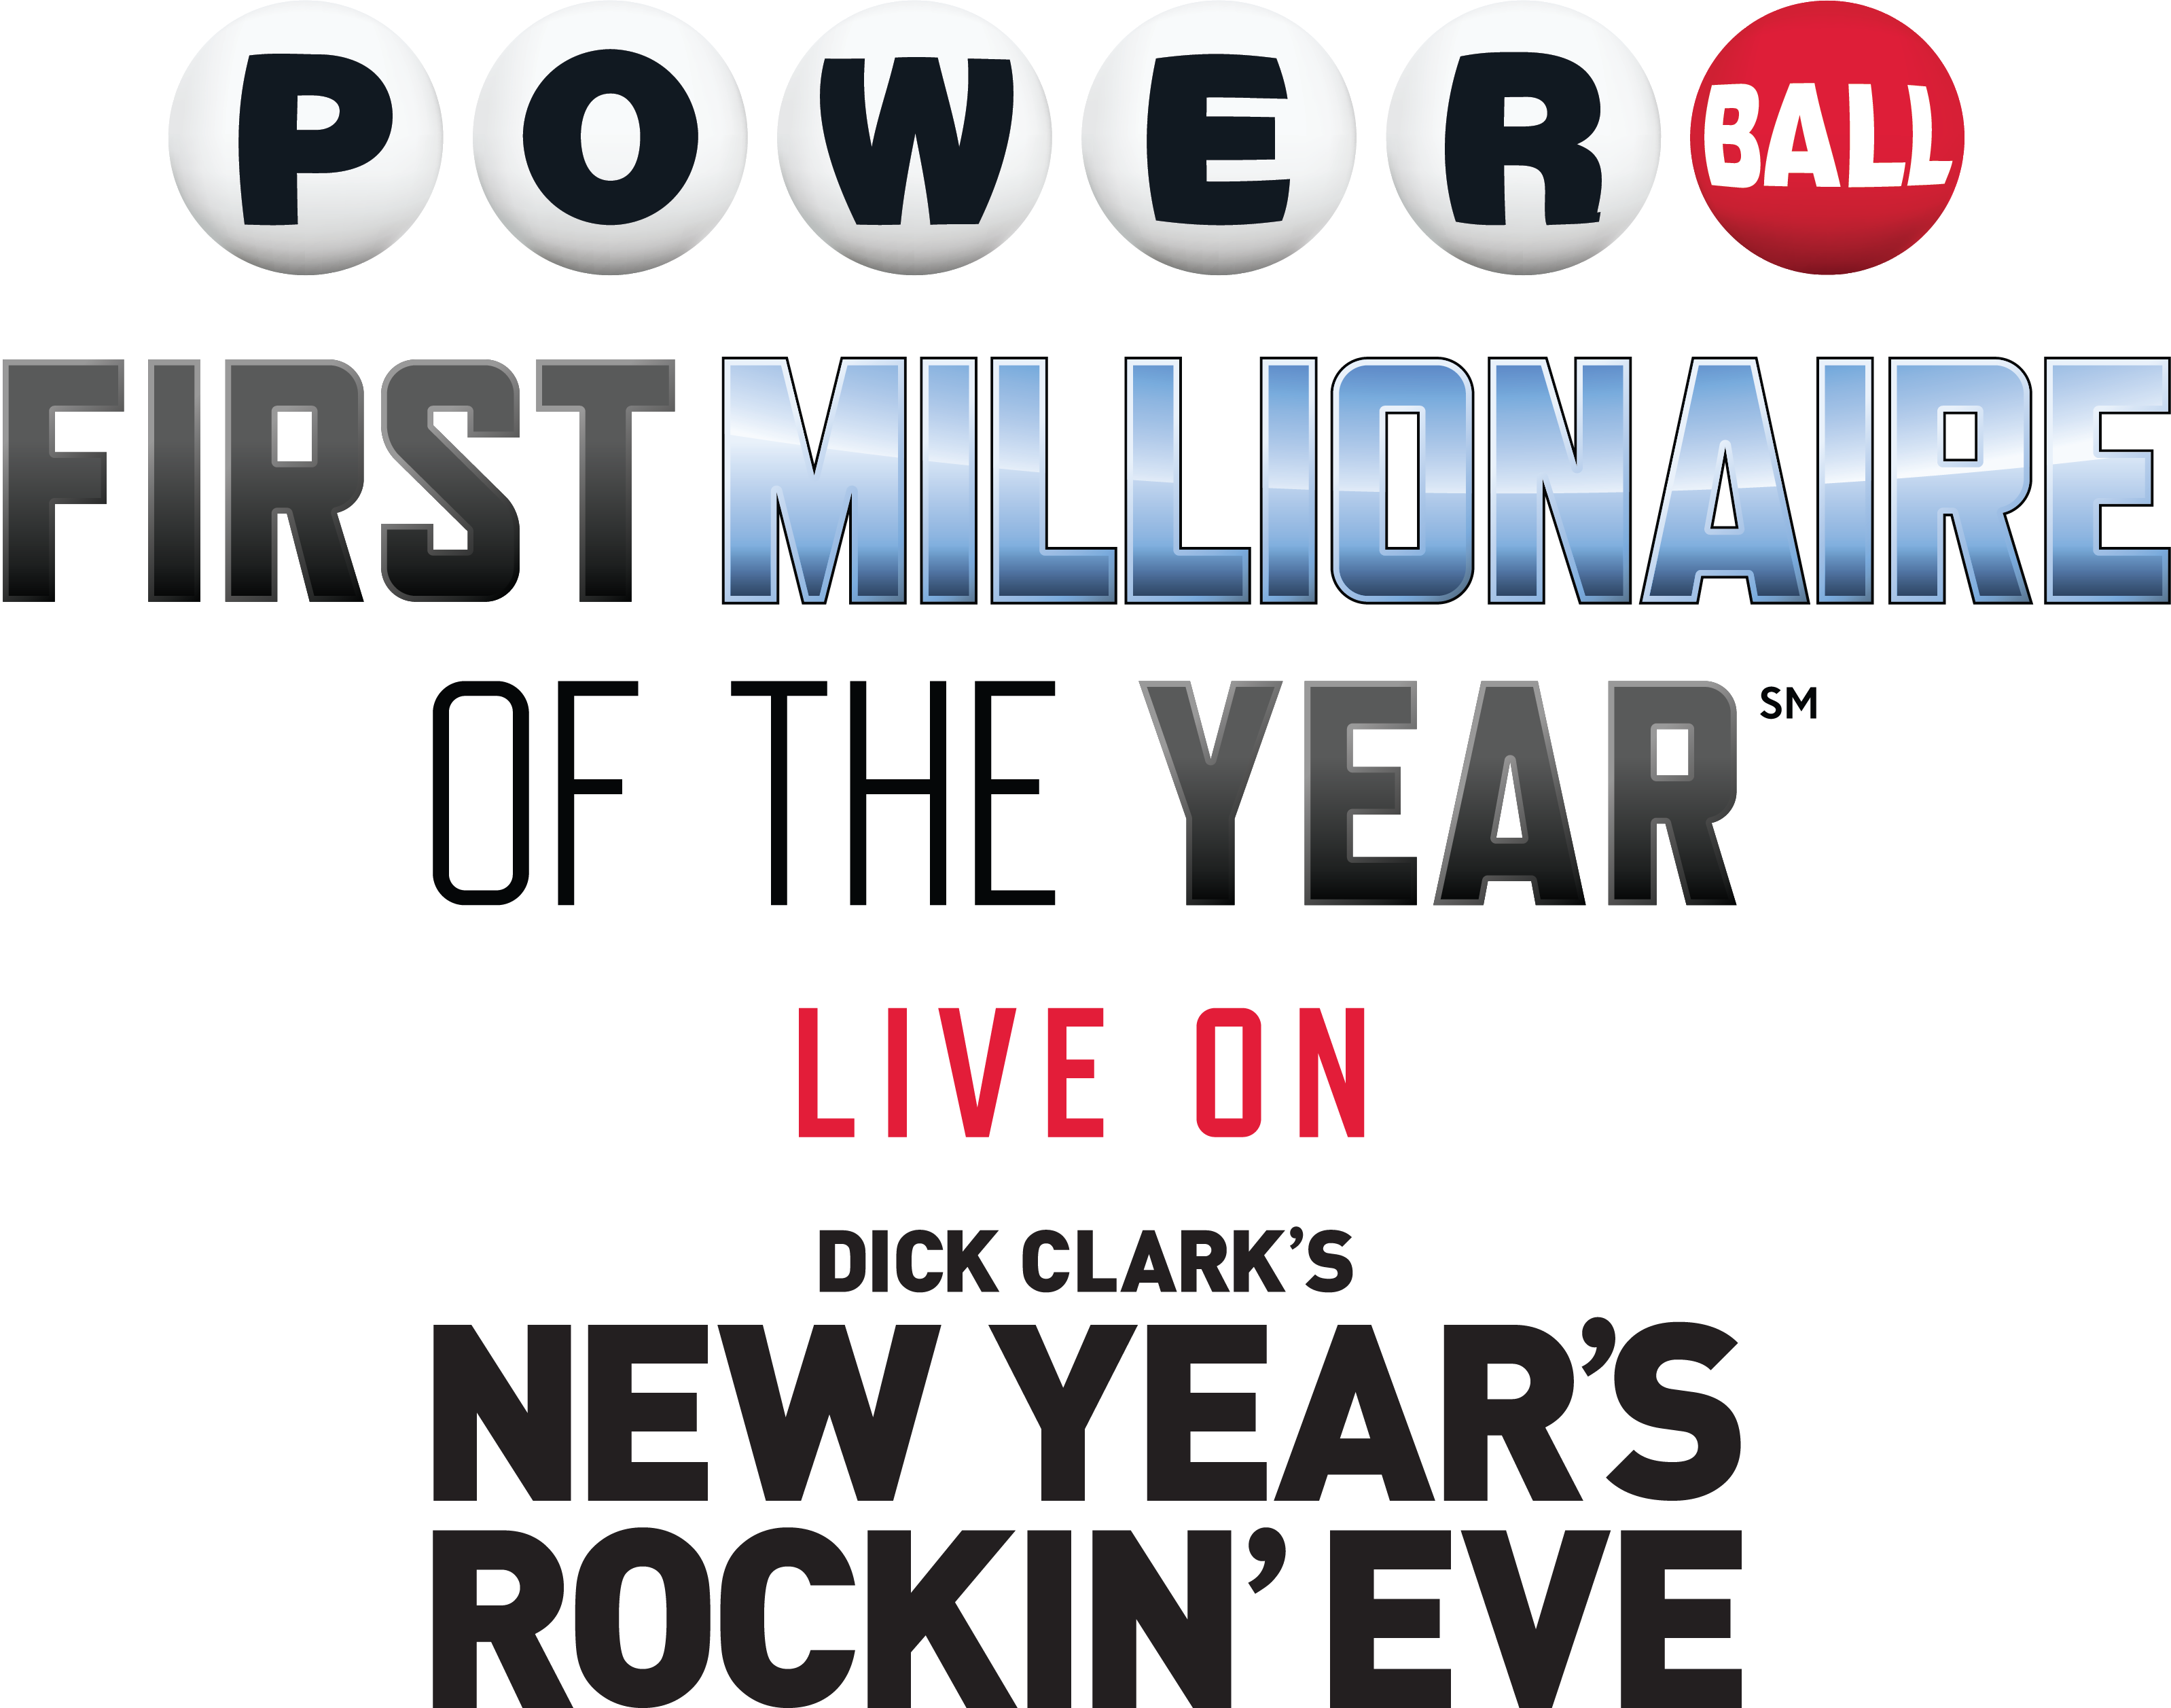 Powerball First Millionaire of the Year